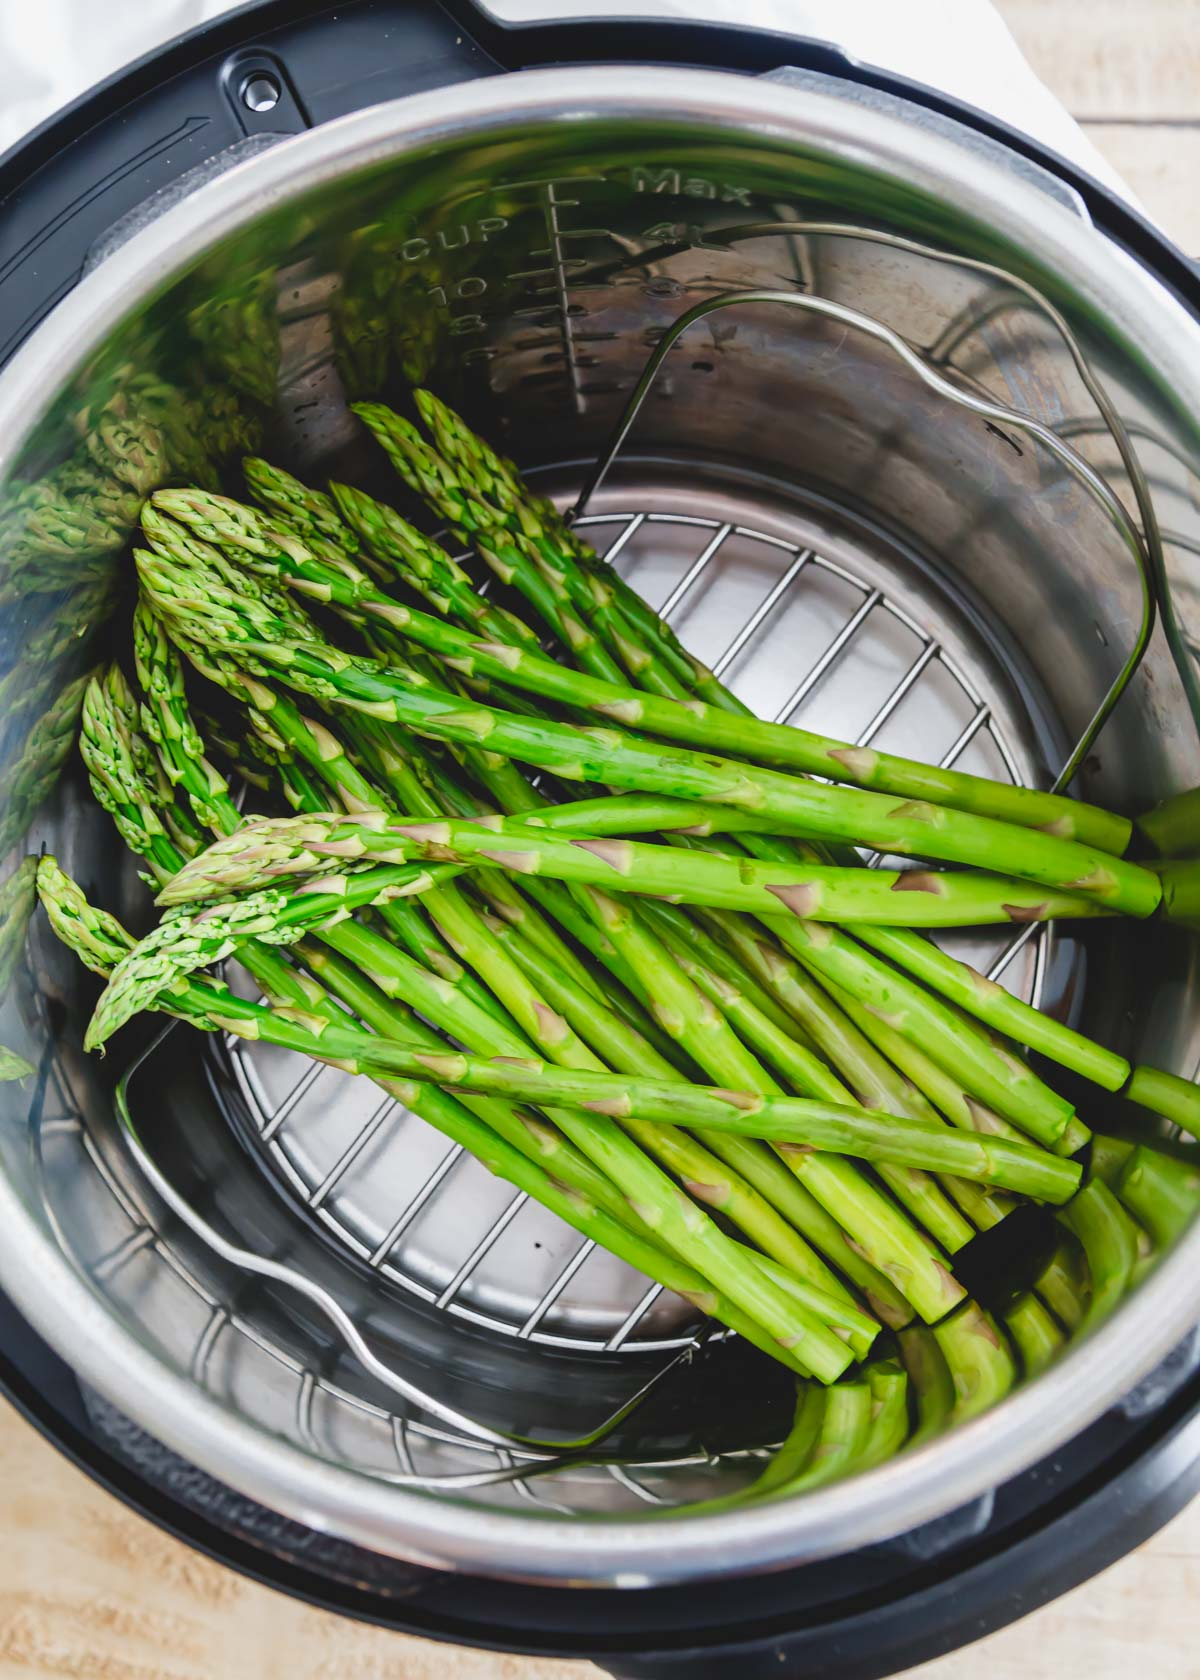 Raw asparagus spears inside an Instant Pot atop the metal trivet.